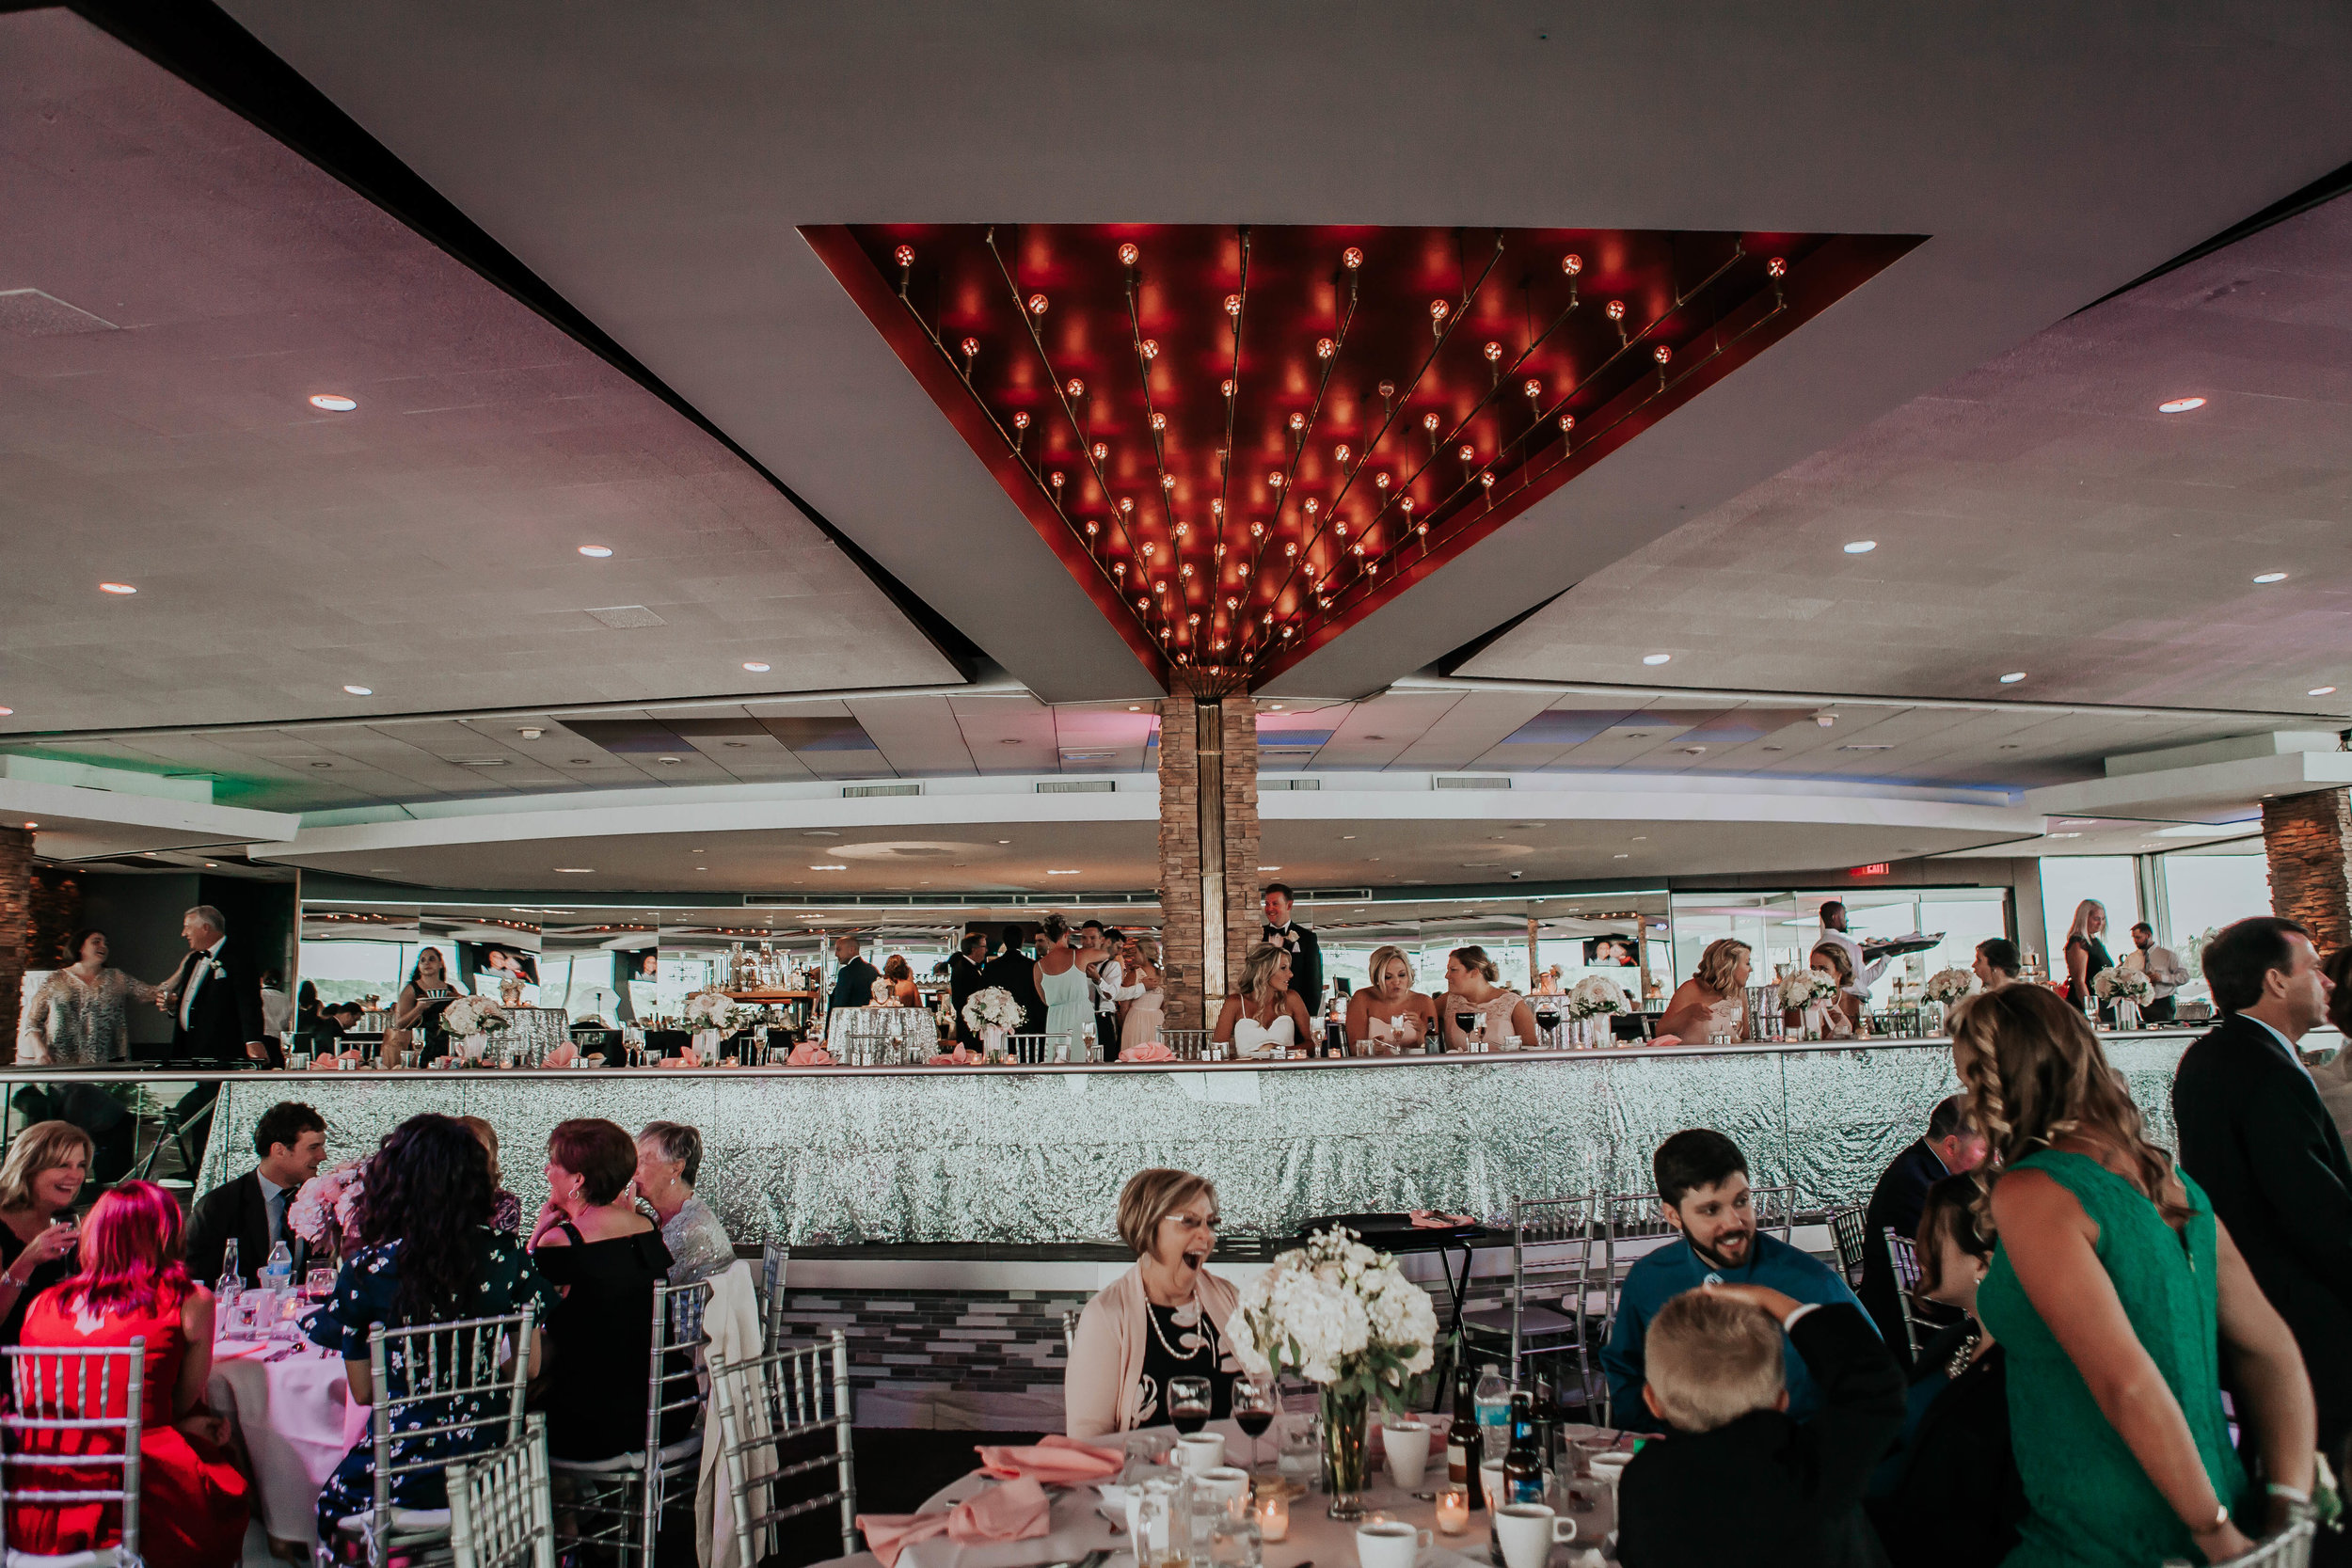 capacity - With the capability to entertain 100-500 guests for a full-service dinner, The Marine Room boasts the perfect atmosphere to entertain guests with live music and entertainment.